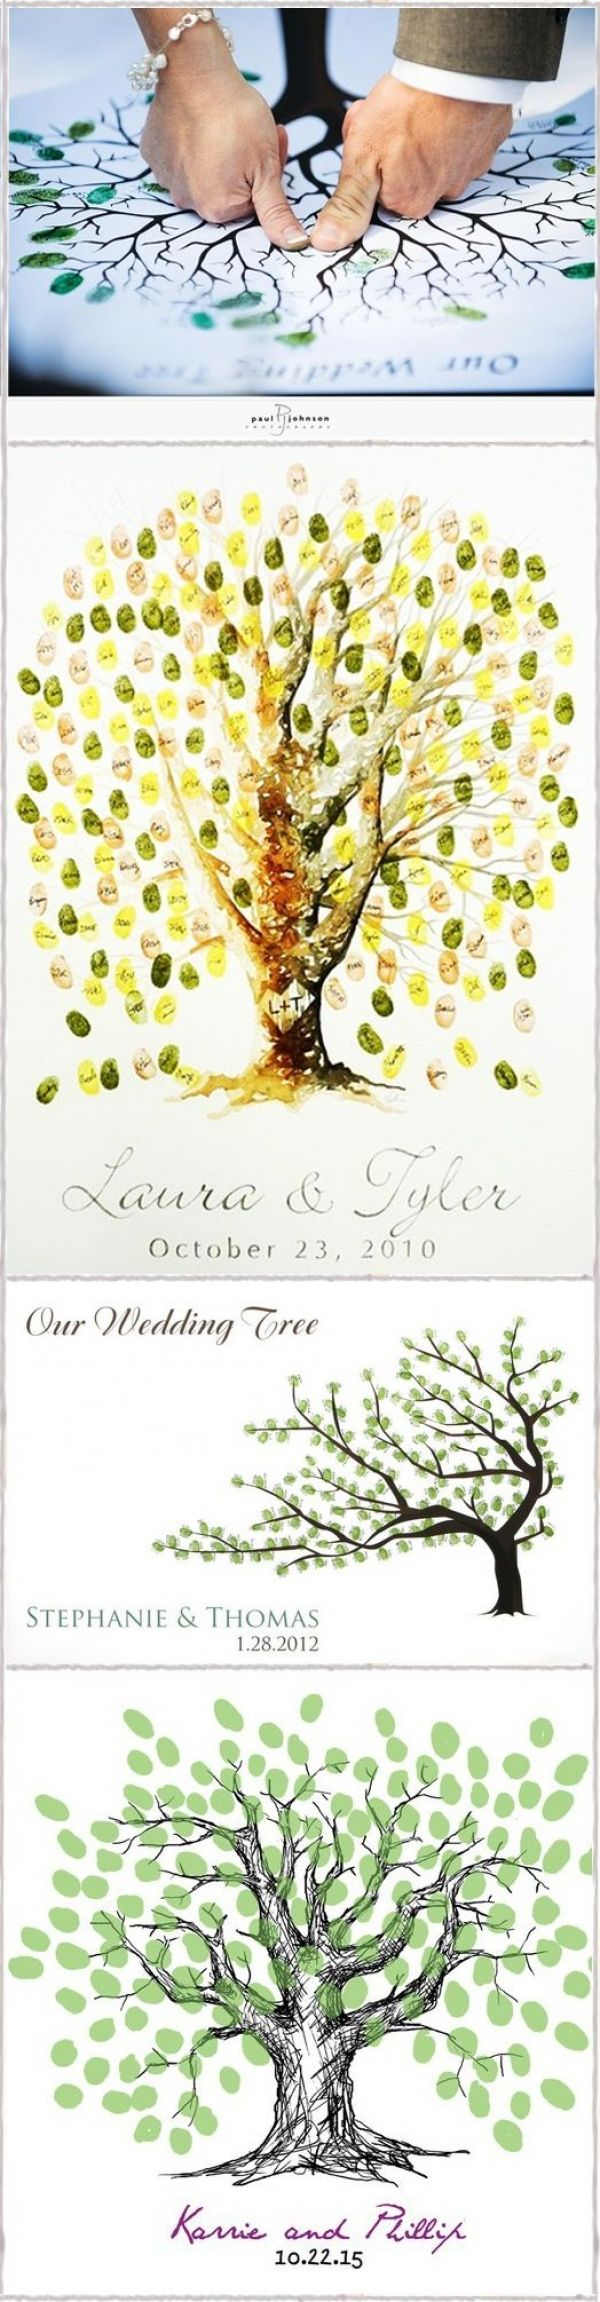 fingerprints #wedding #tree #signatures #names #weedingkeepsake ...